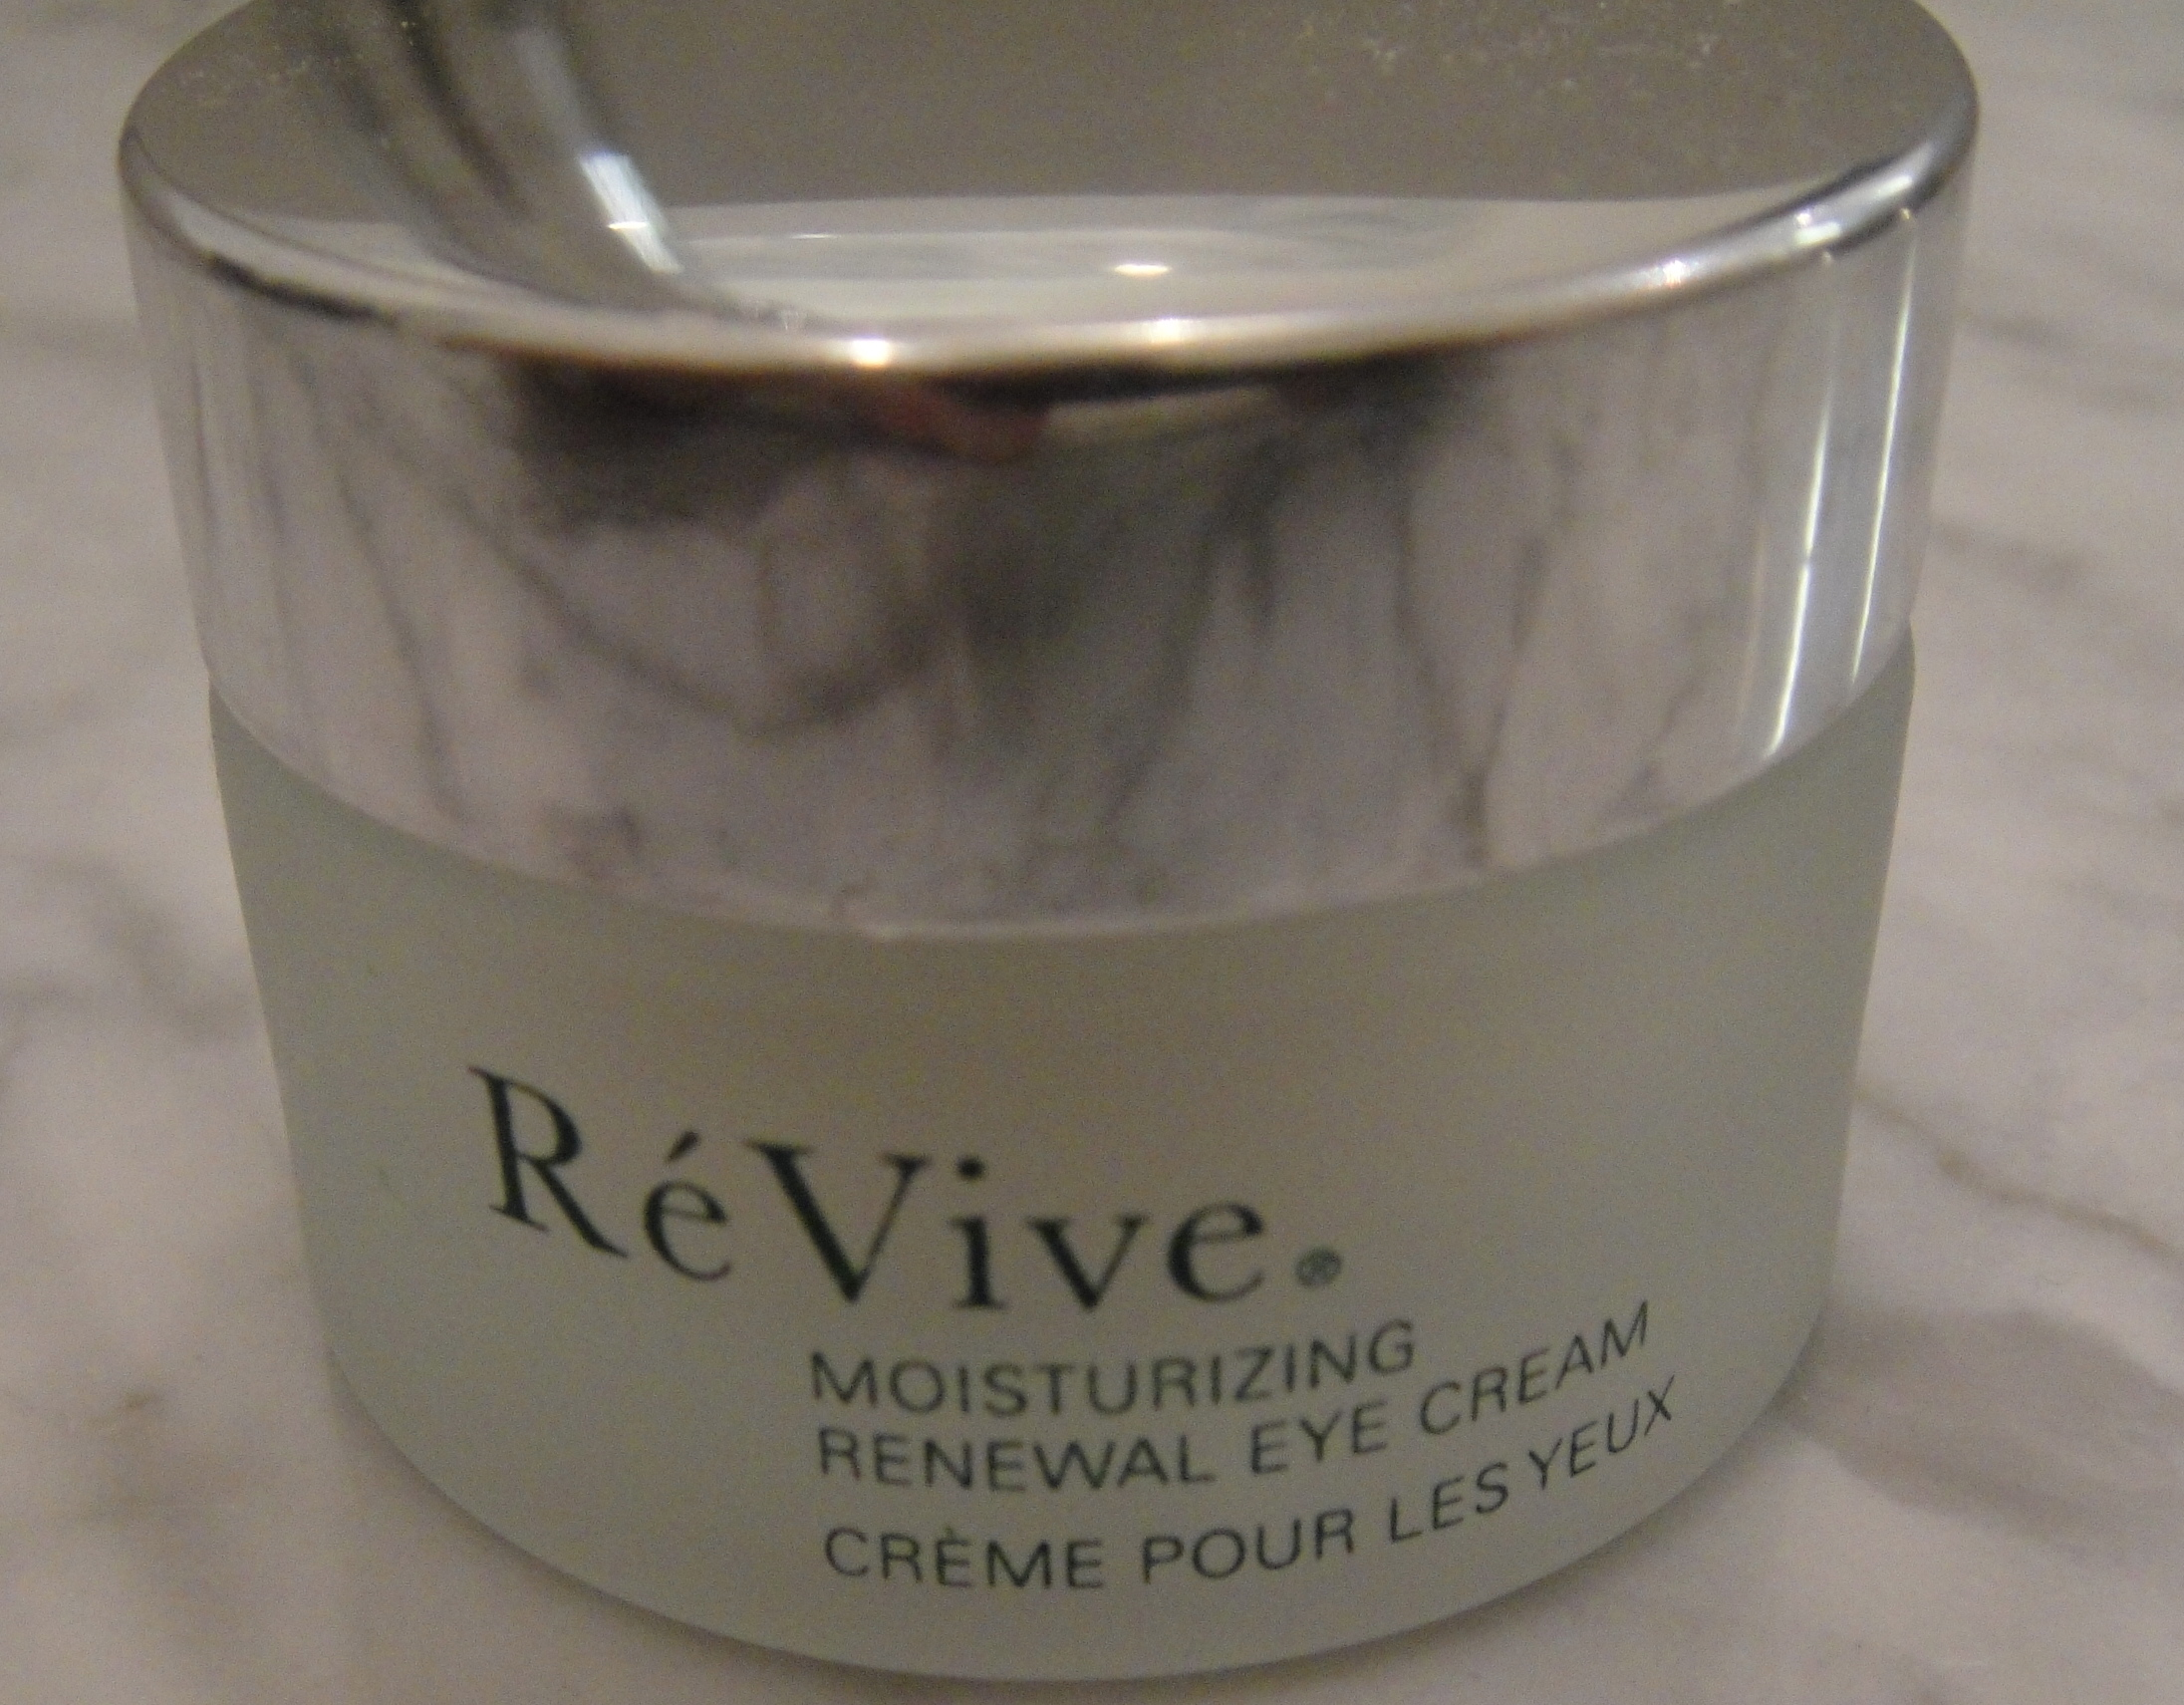 Eyes: Re Vive, moisturizing renewal eye cream